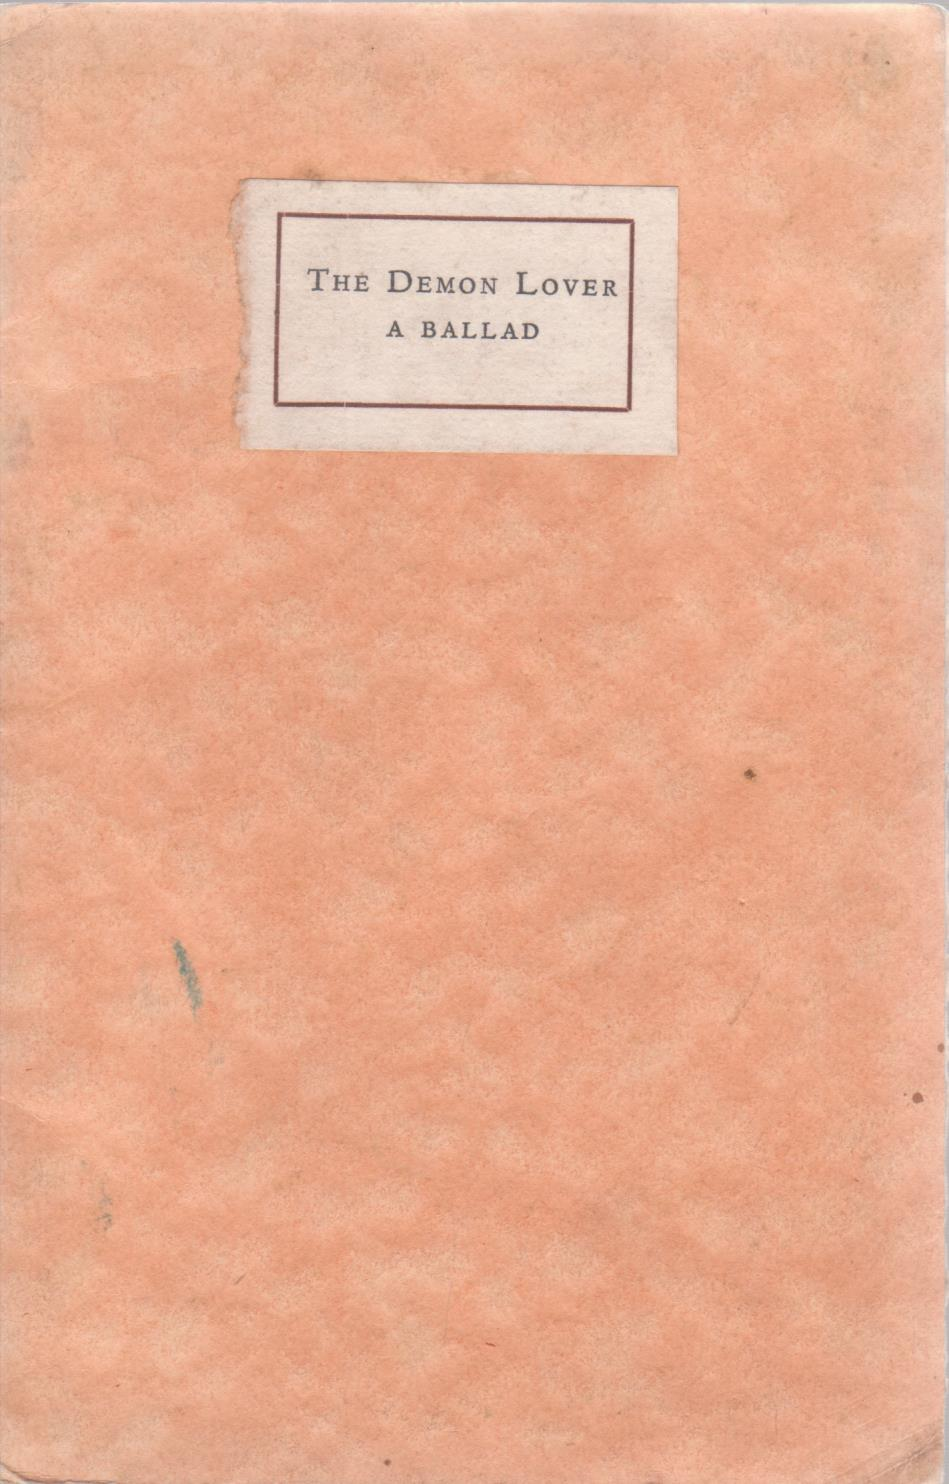 cover image of The Demon Lover, a ballad, by Ruth dallas, for sale in New Zealand